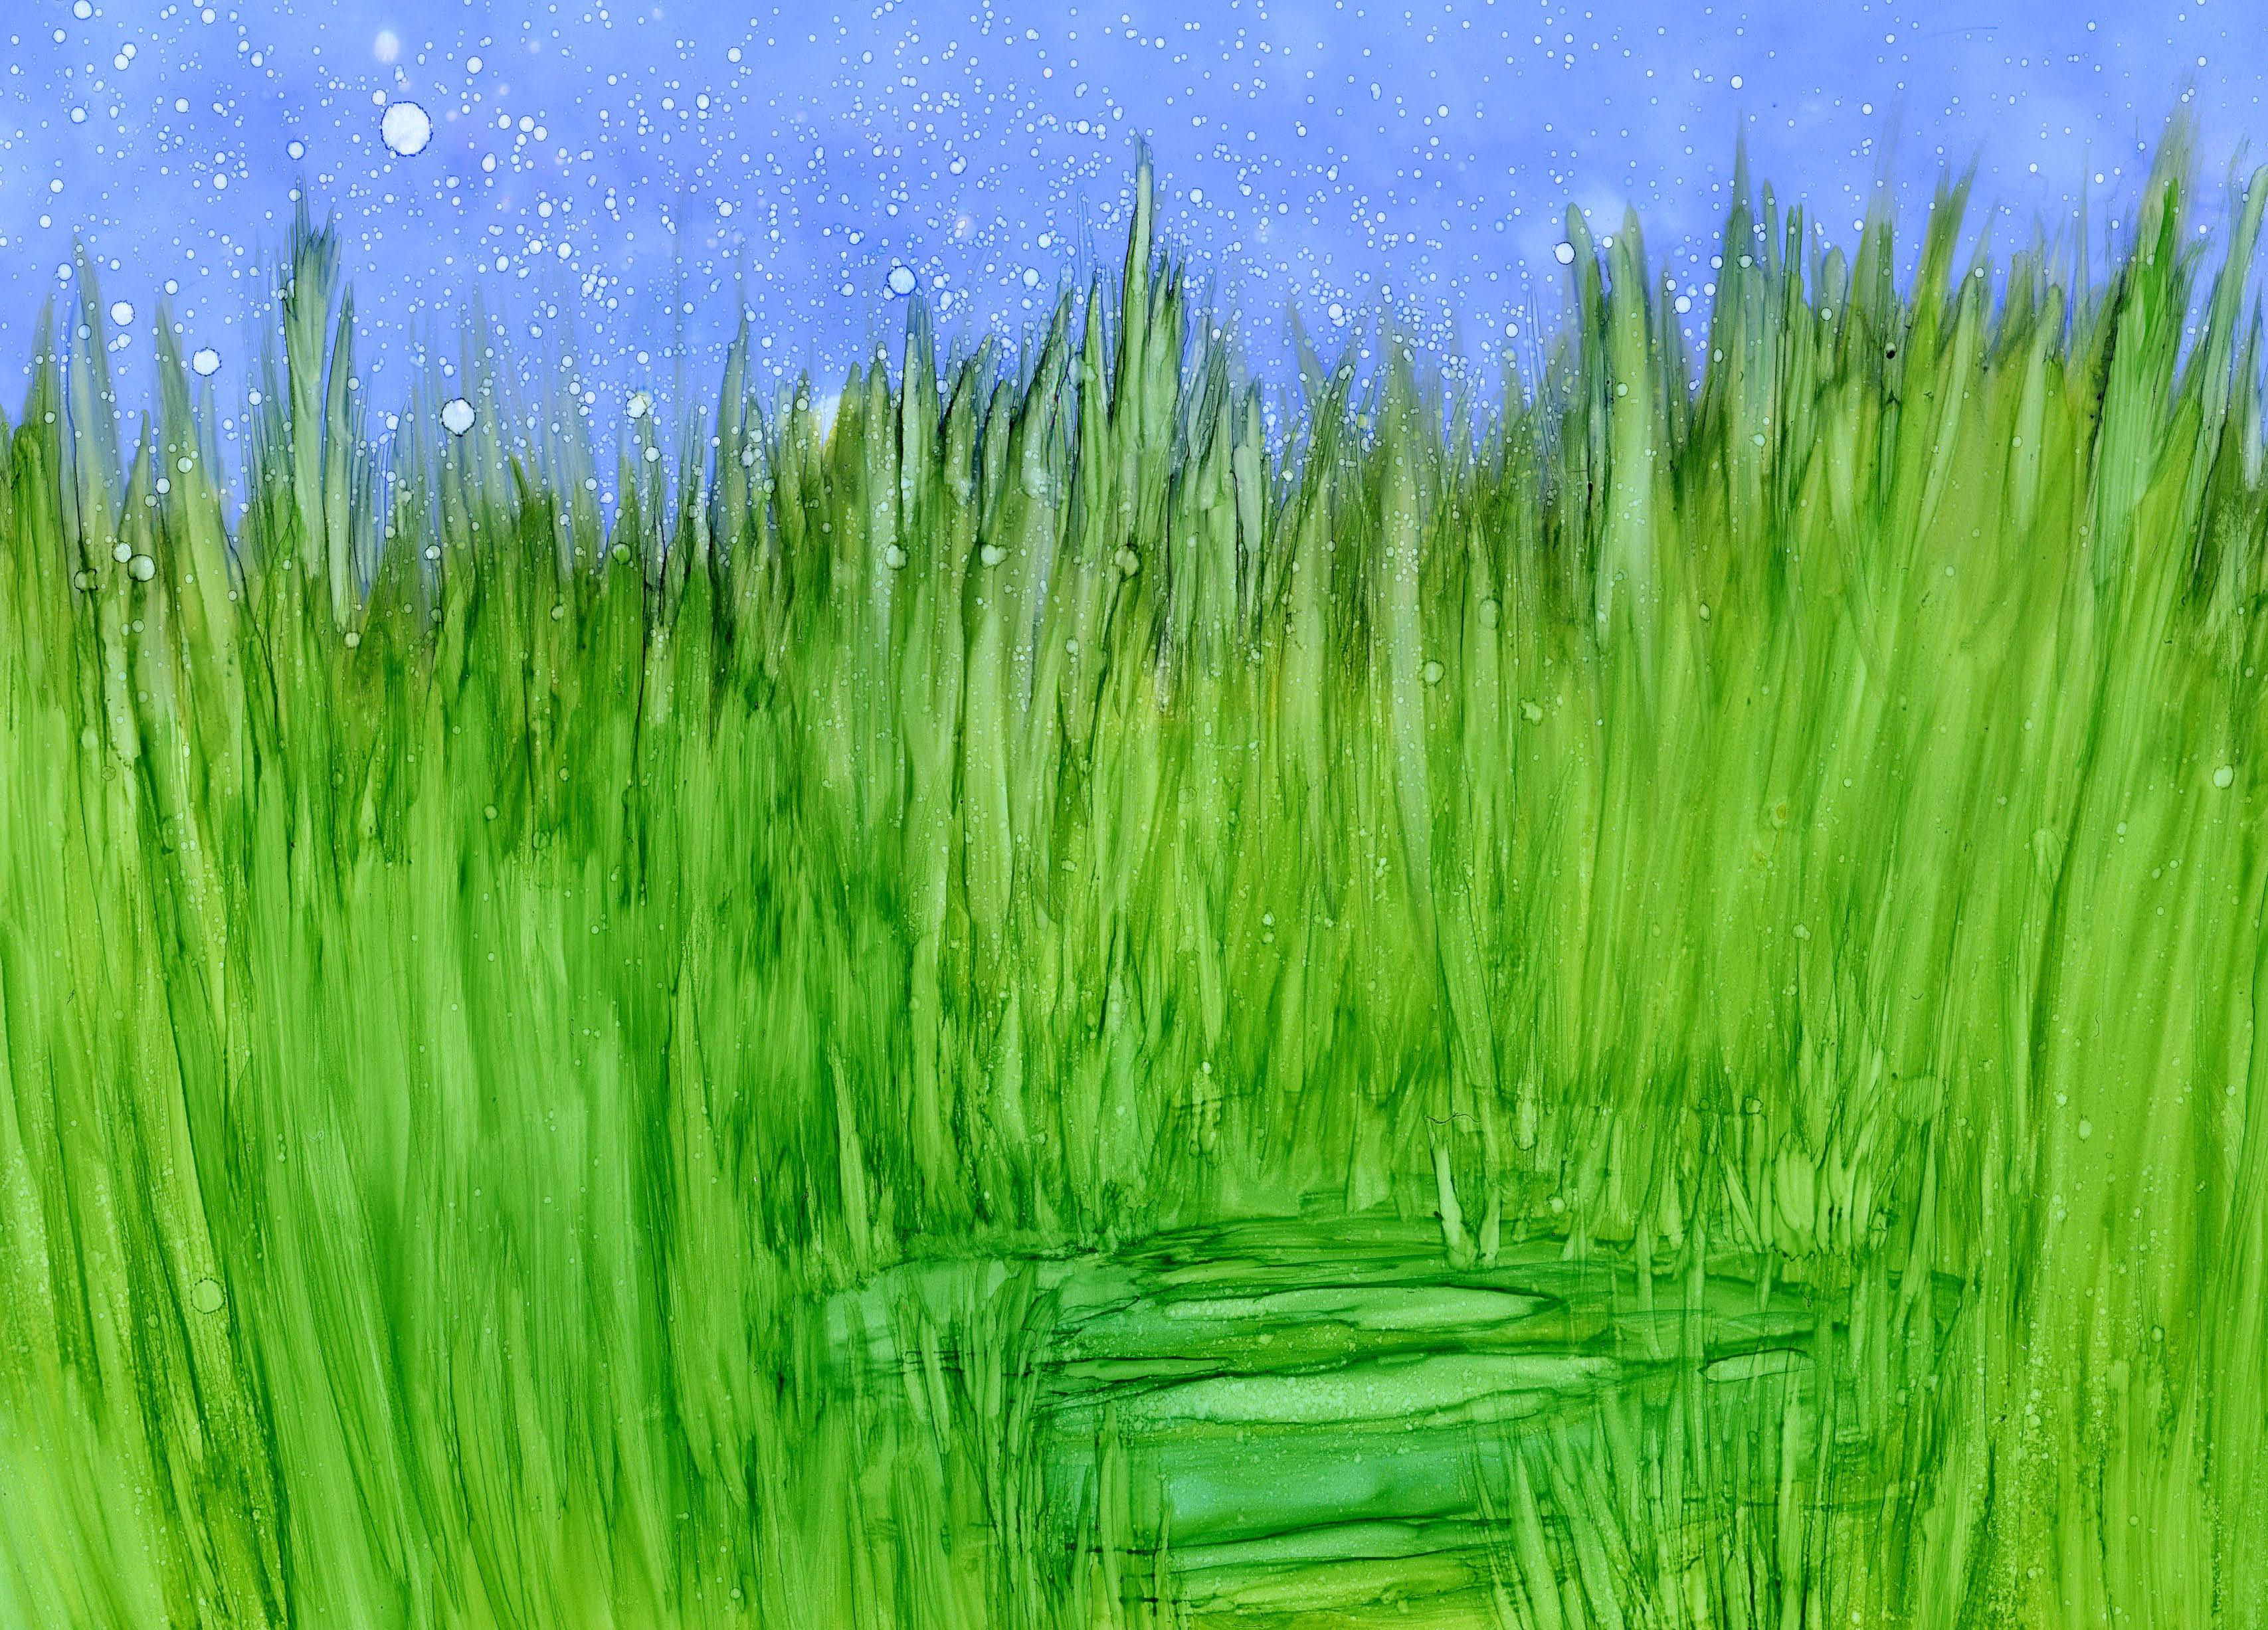 Grassy Marsh - Alcohol Ink 9 X 12 $125